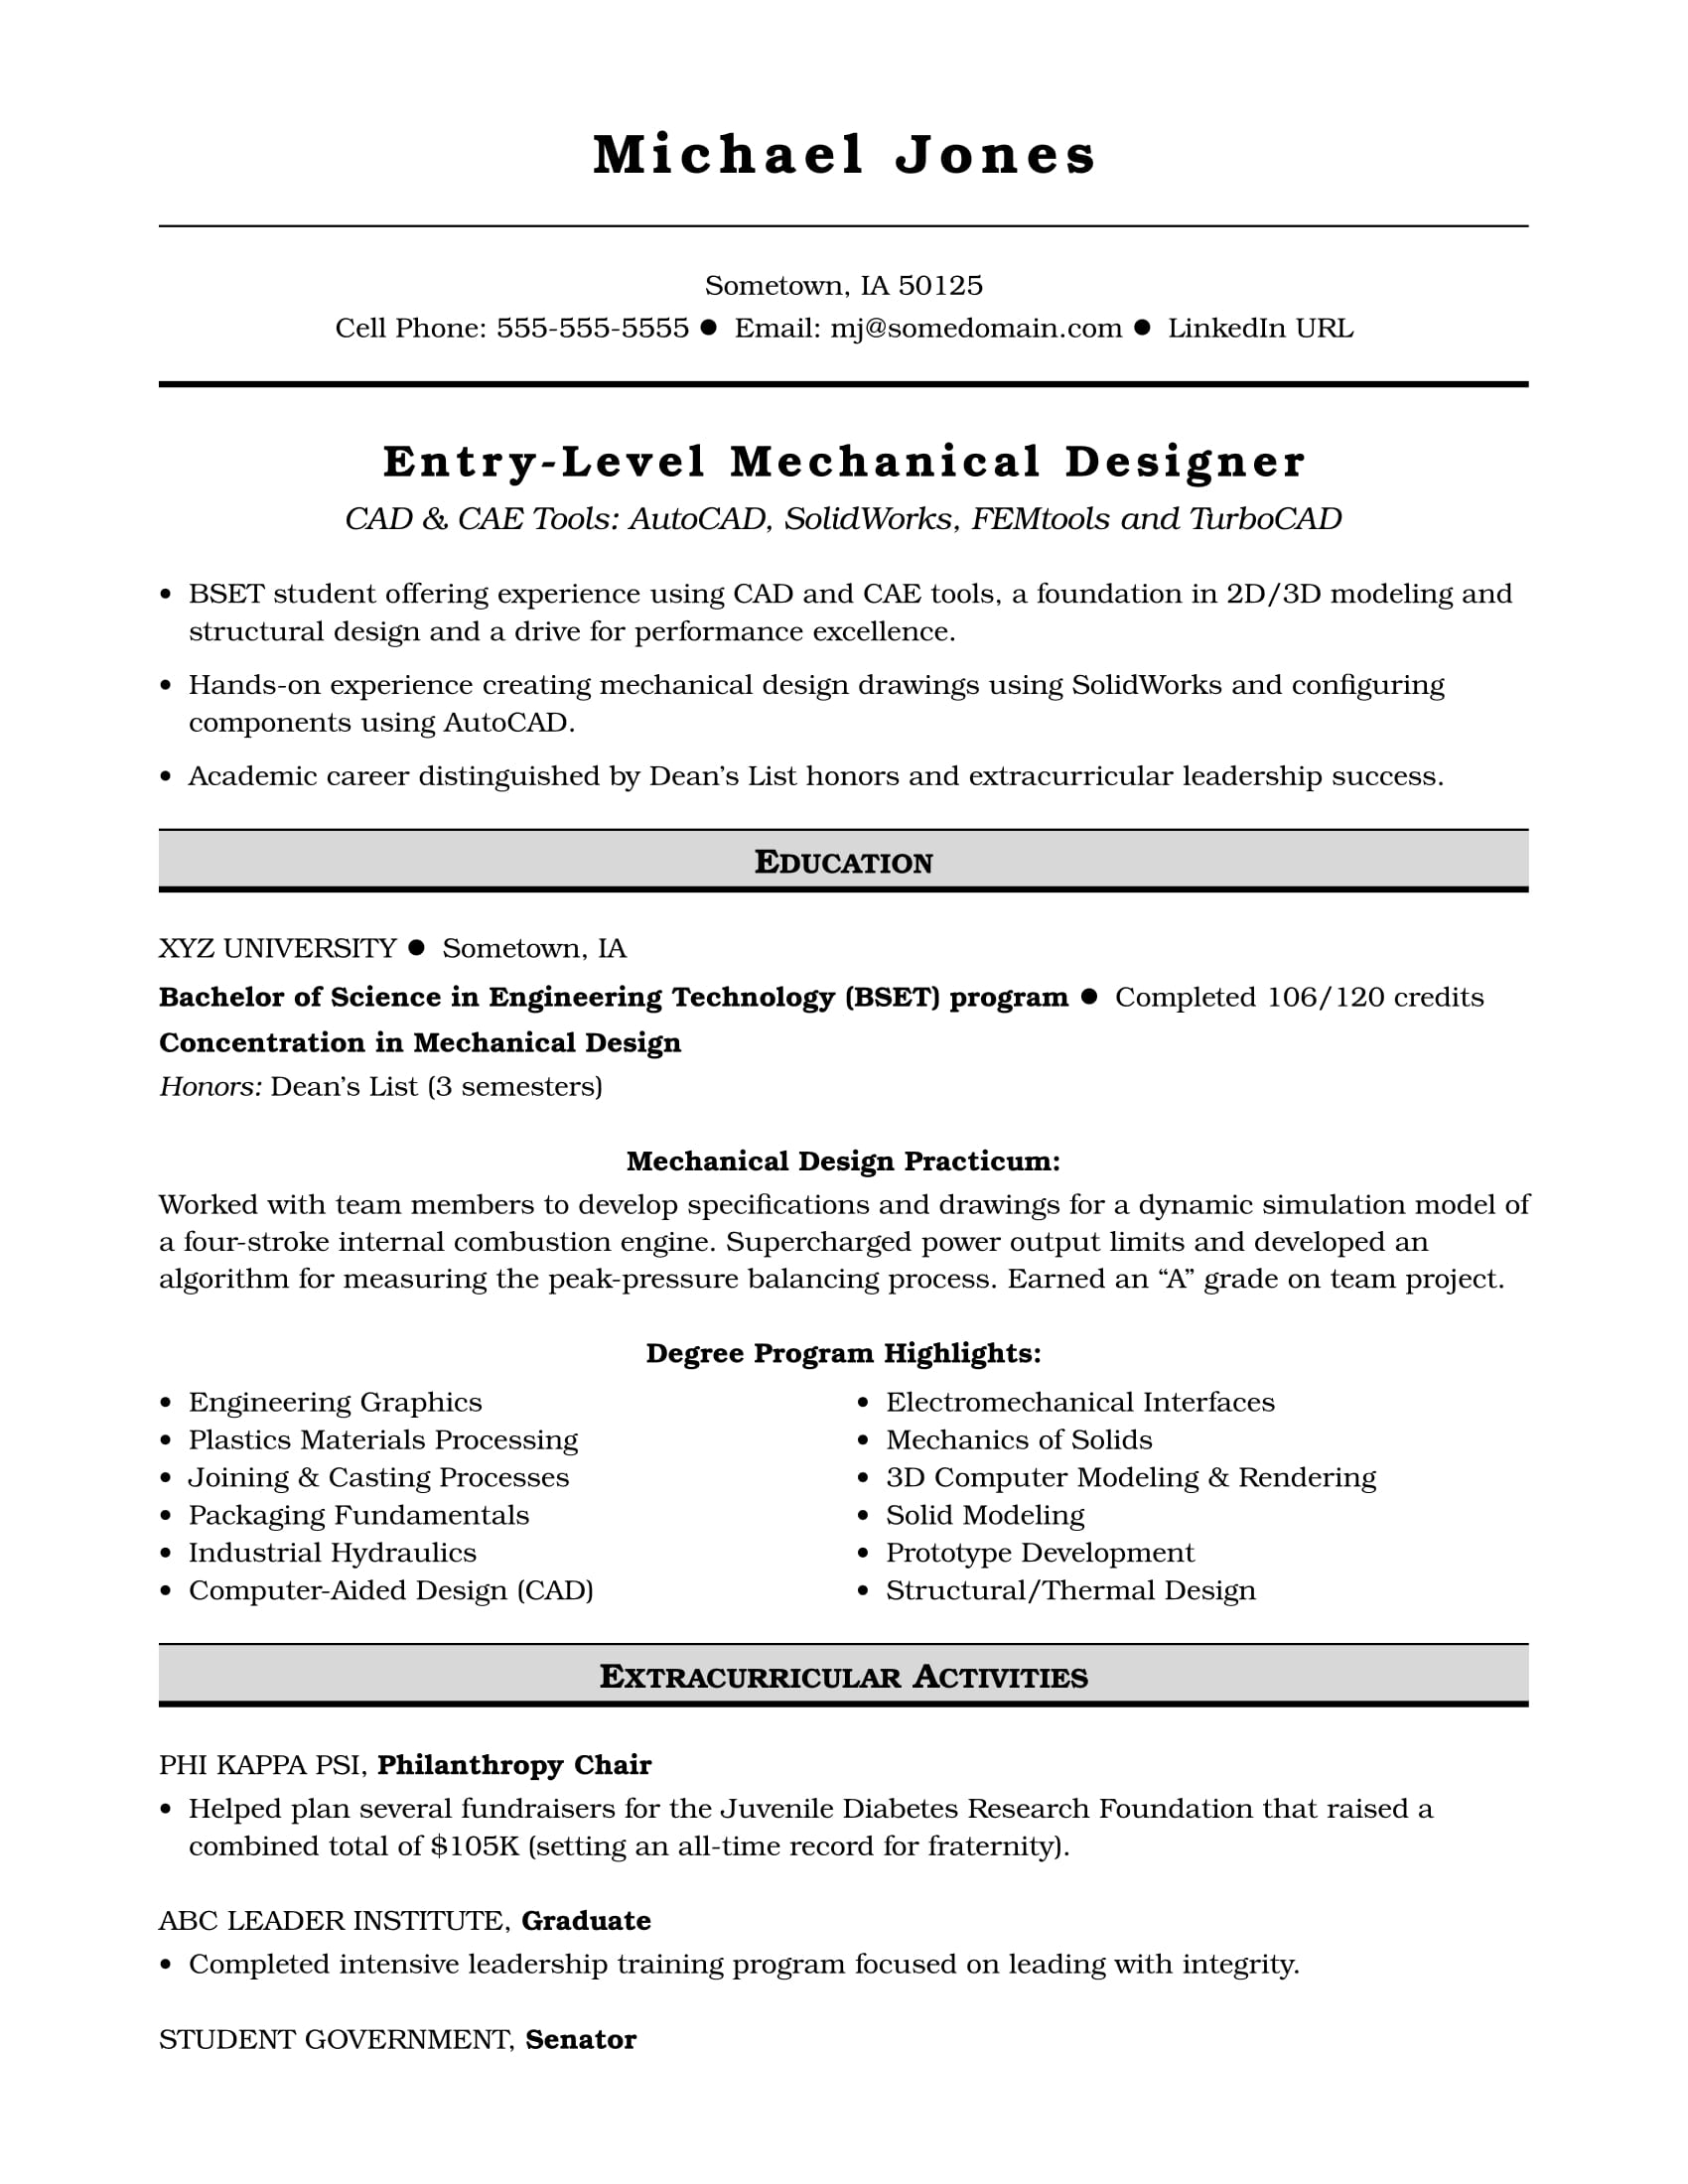 Sample Resume For An Entry Level Mechanical Designer